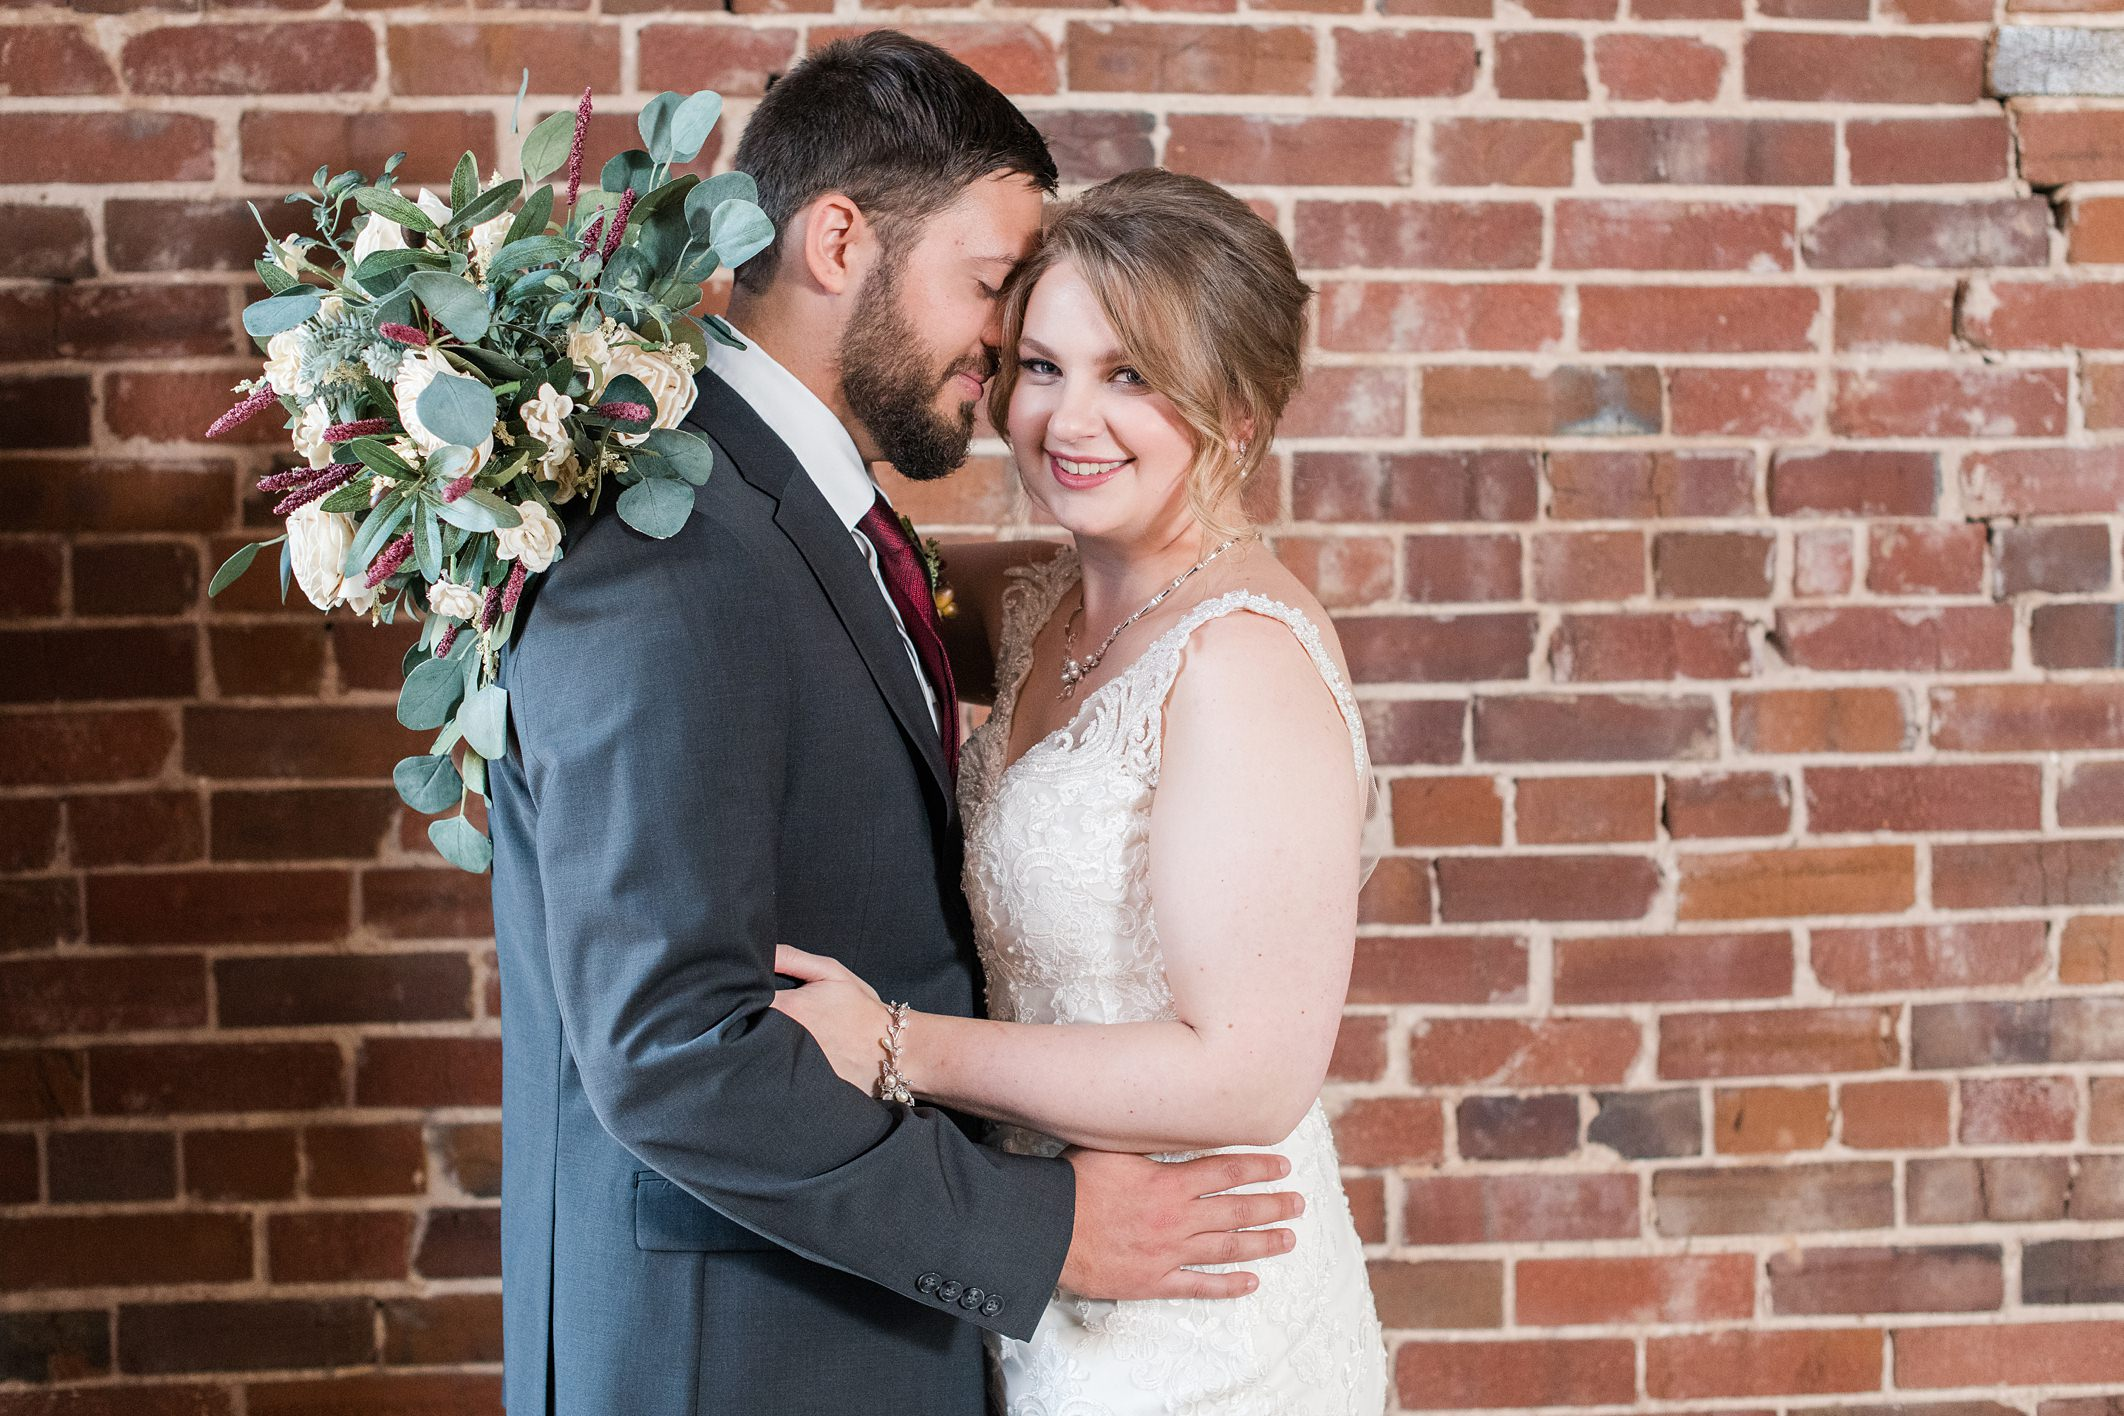 Addison + Casey Wedding at Loft 1023 in Little Rock, AR